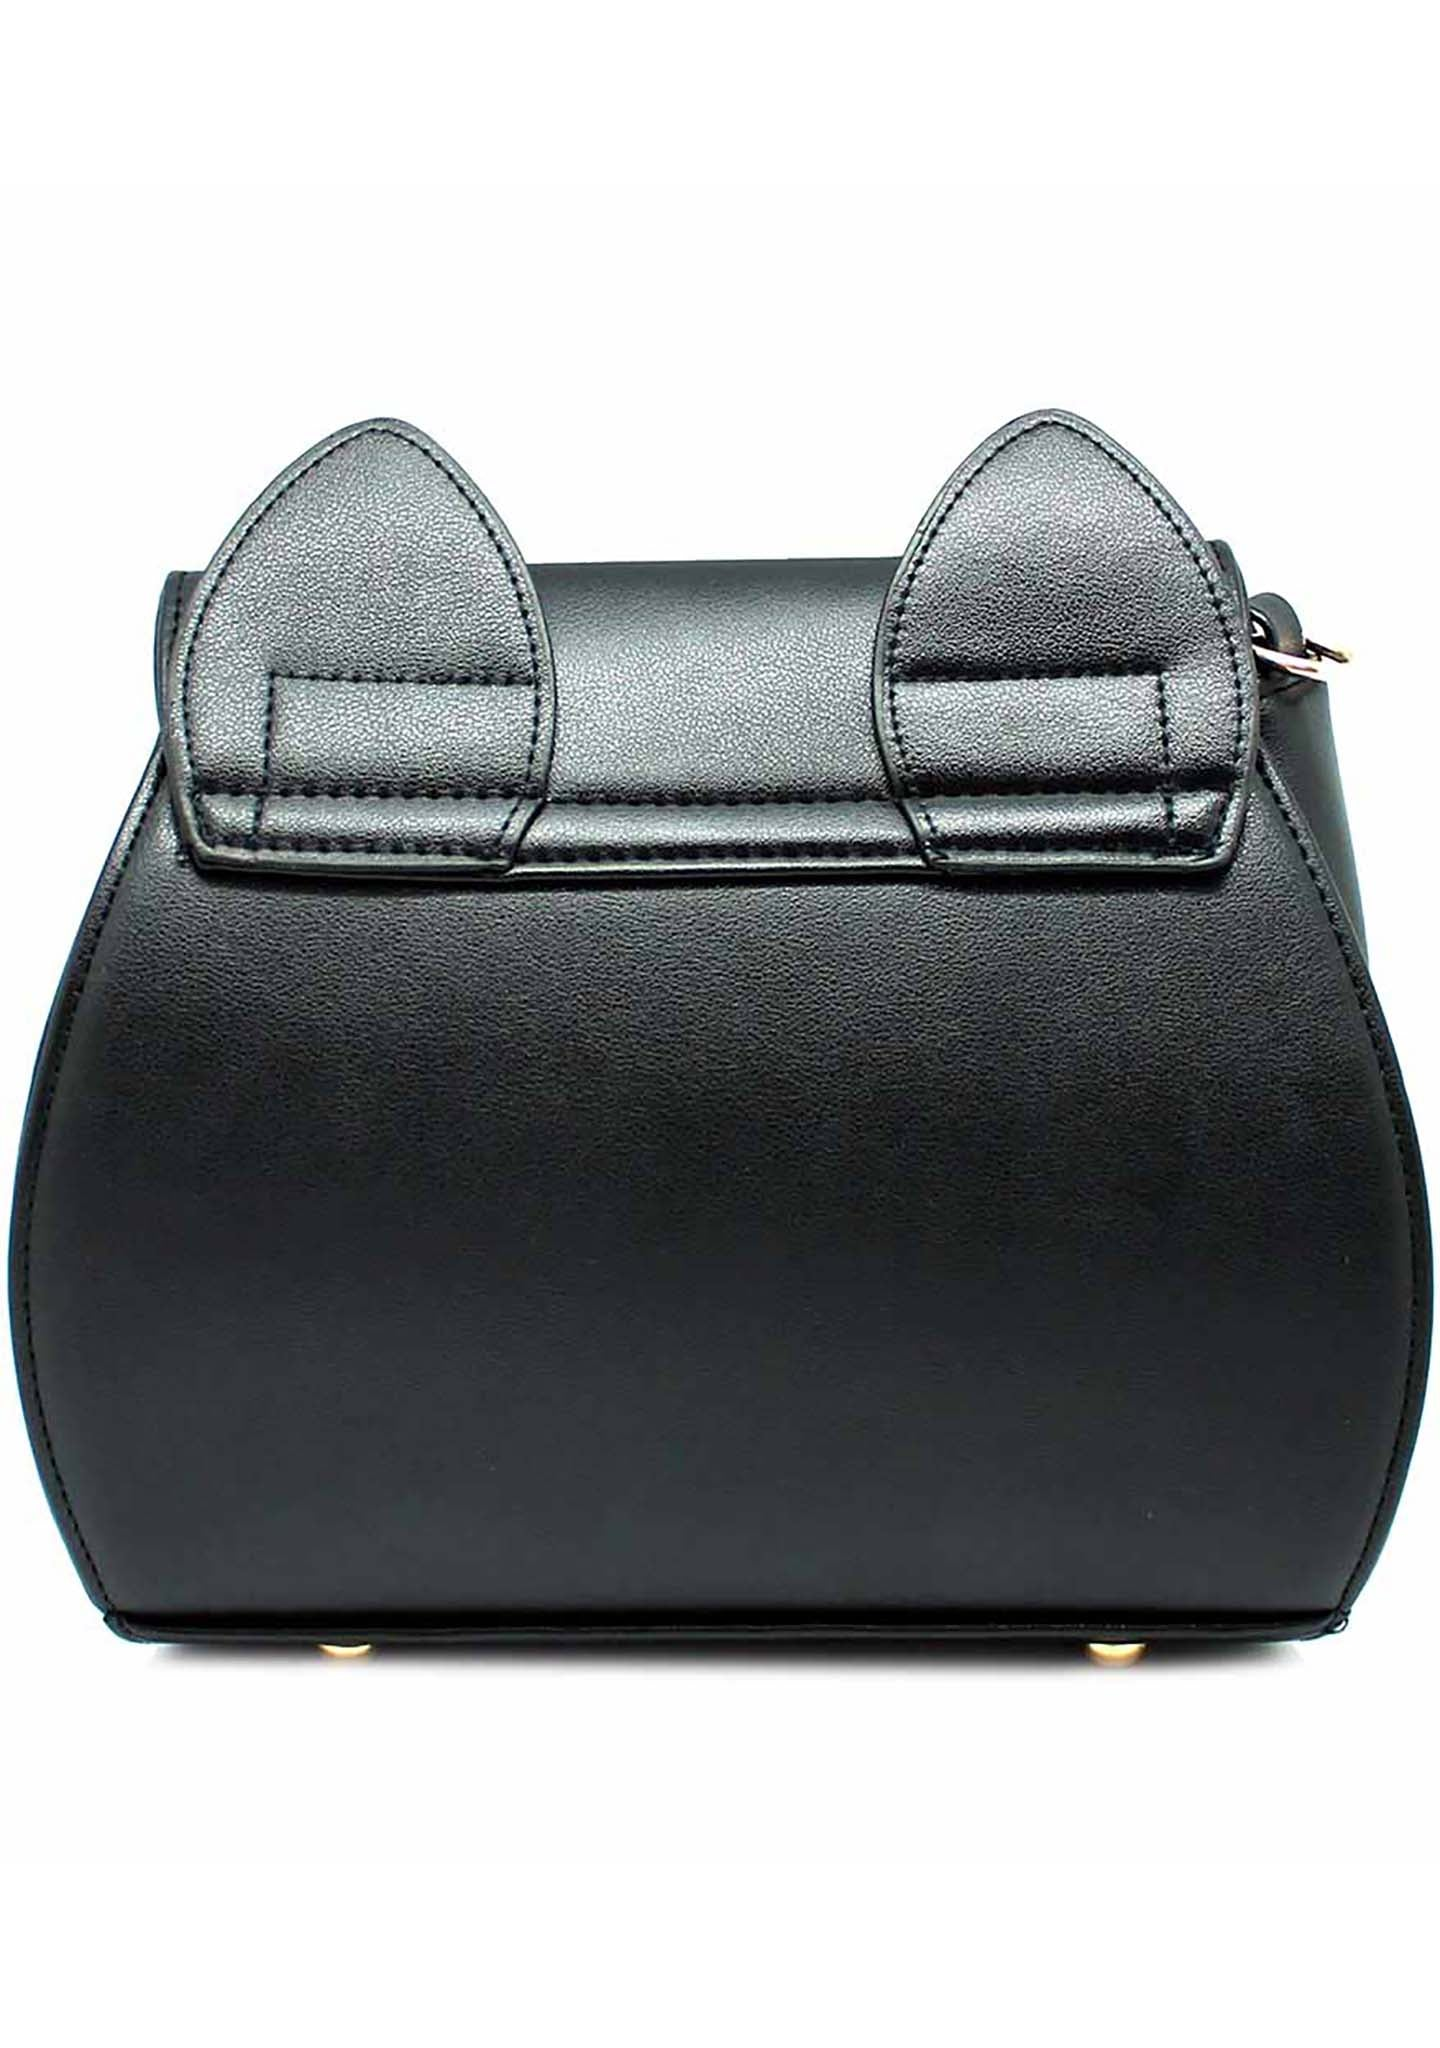 7 LUXE Luna Crossbody Handbag in Black